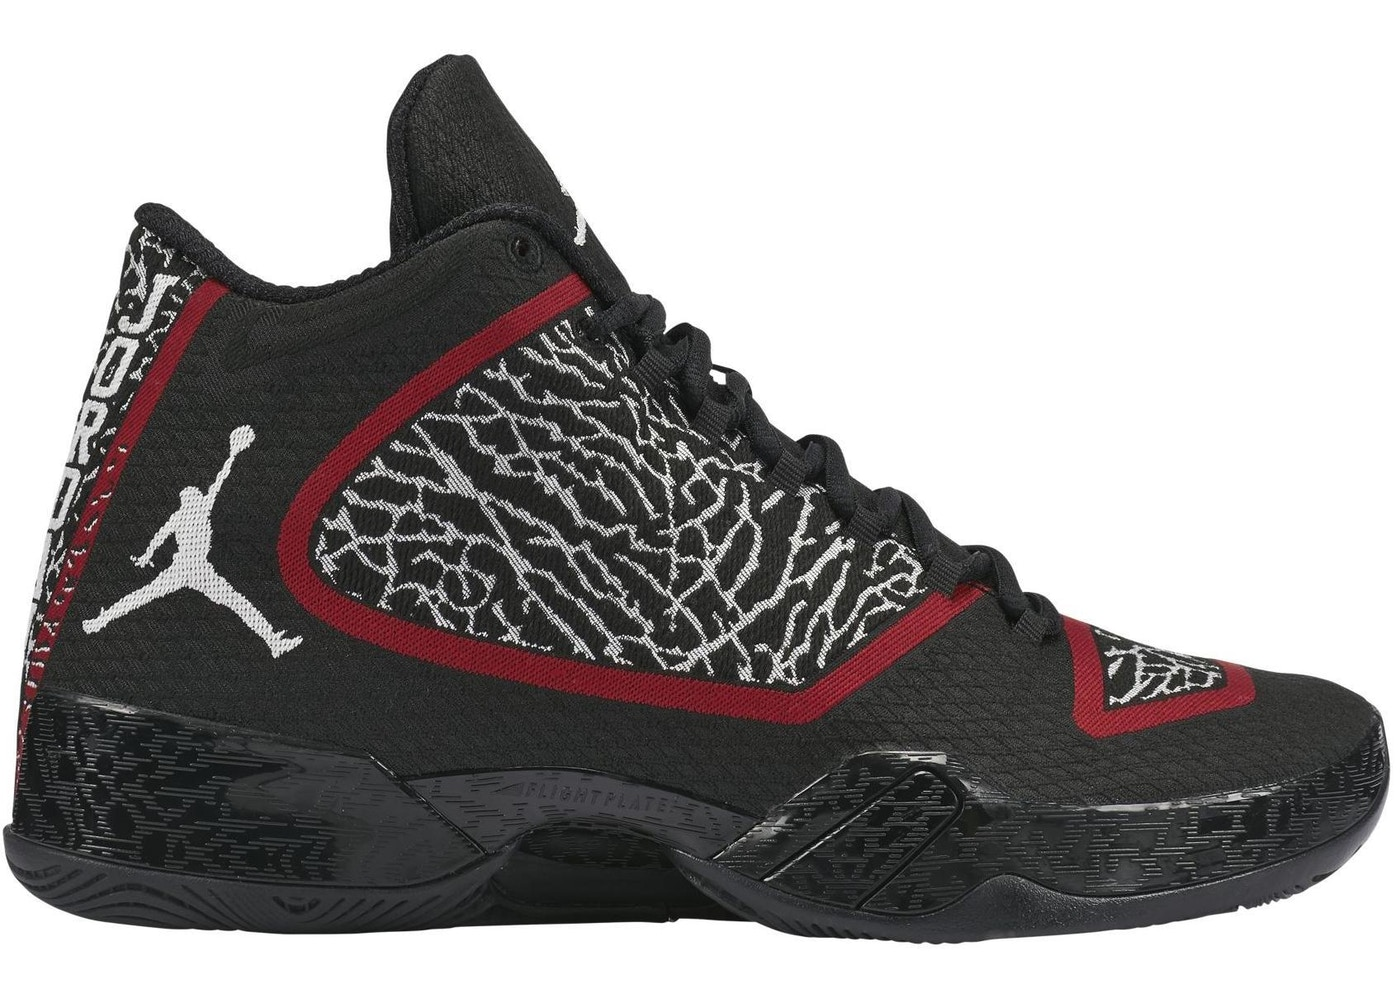 reputable site 99305 603a4 Sell. or Ask. Size 9. View All Bids. Jordan XX9 Black White Gym Red